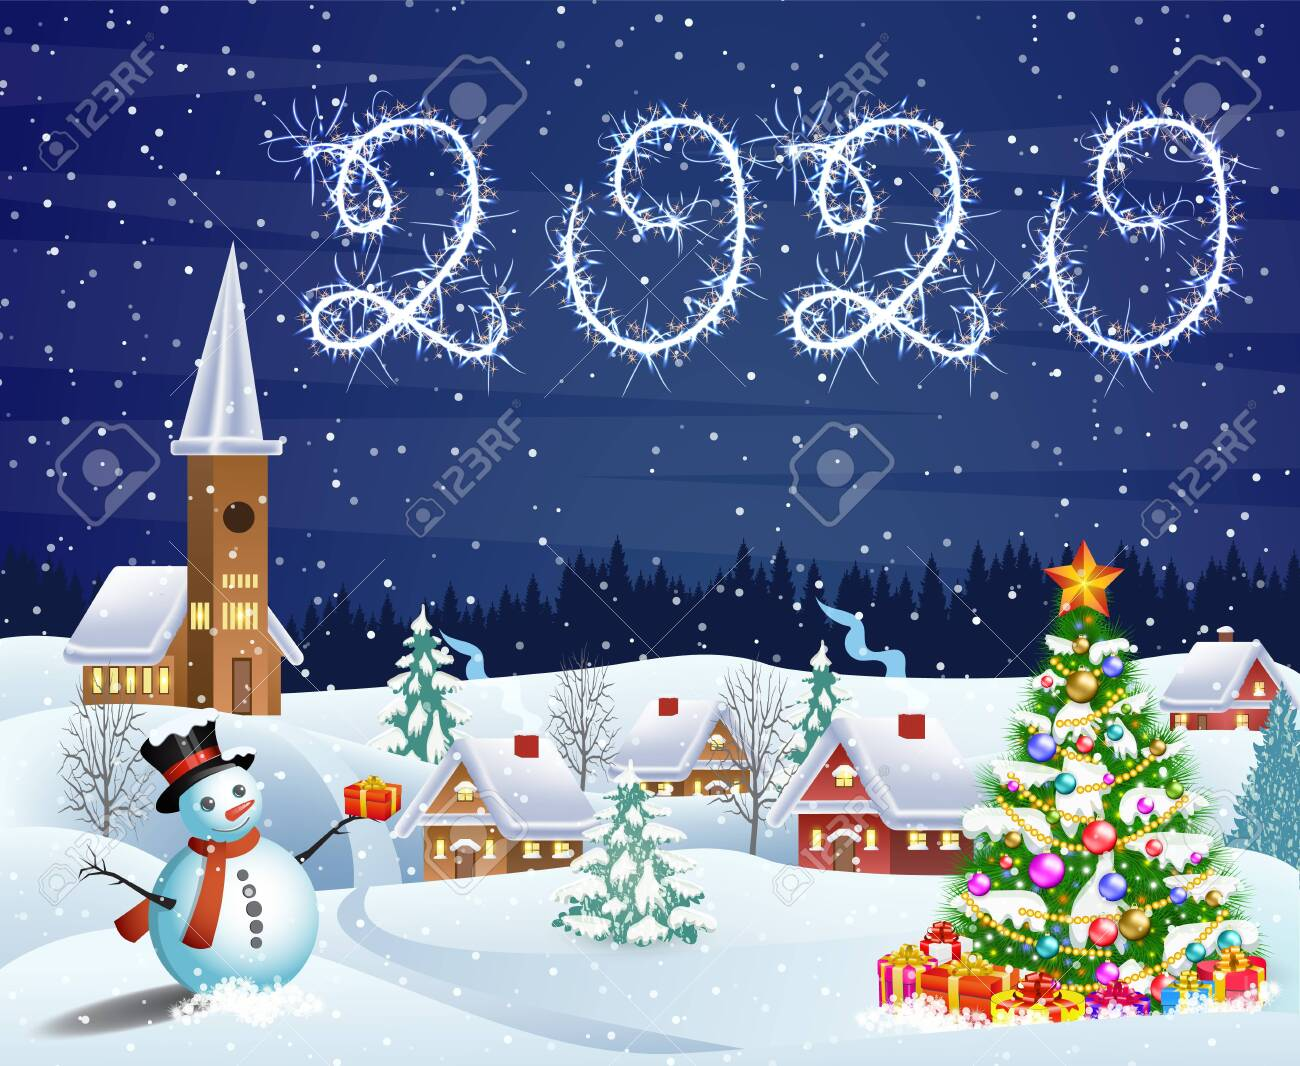 house in snowy Christmas landscape at night - 133738967